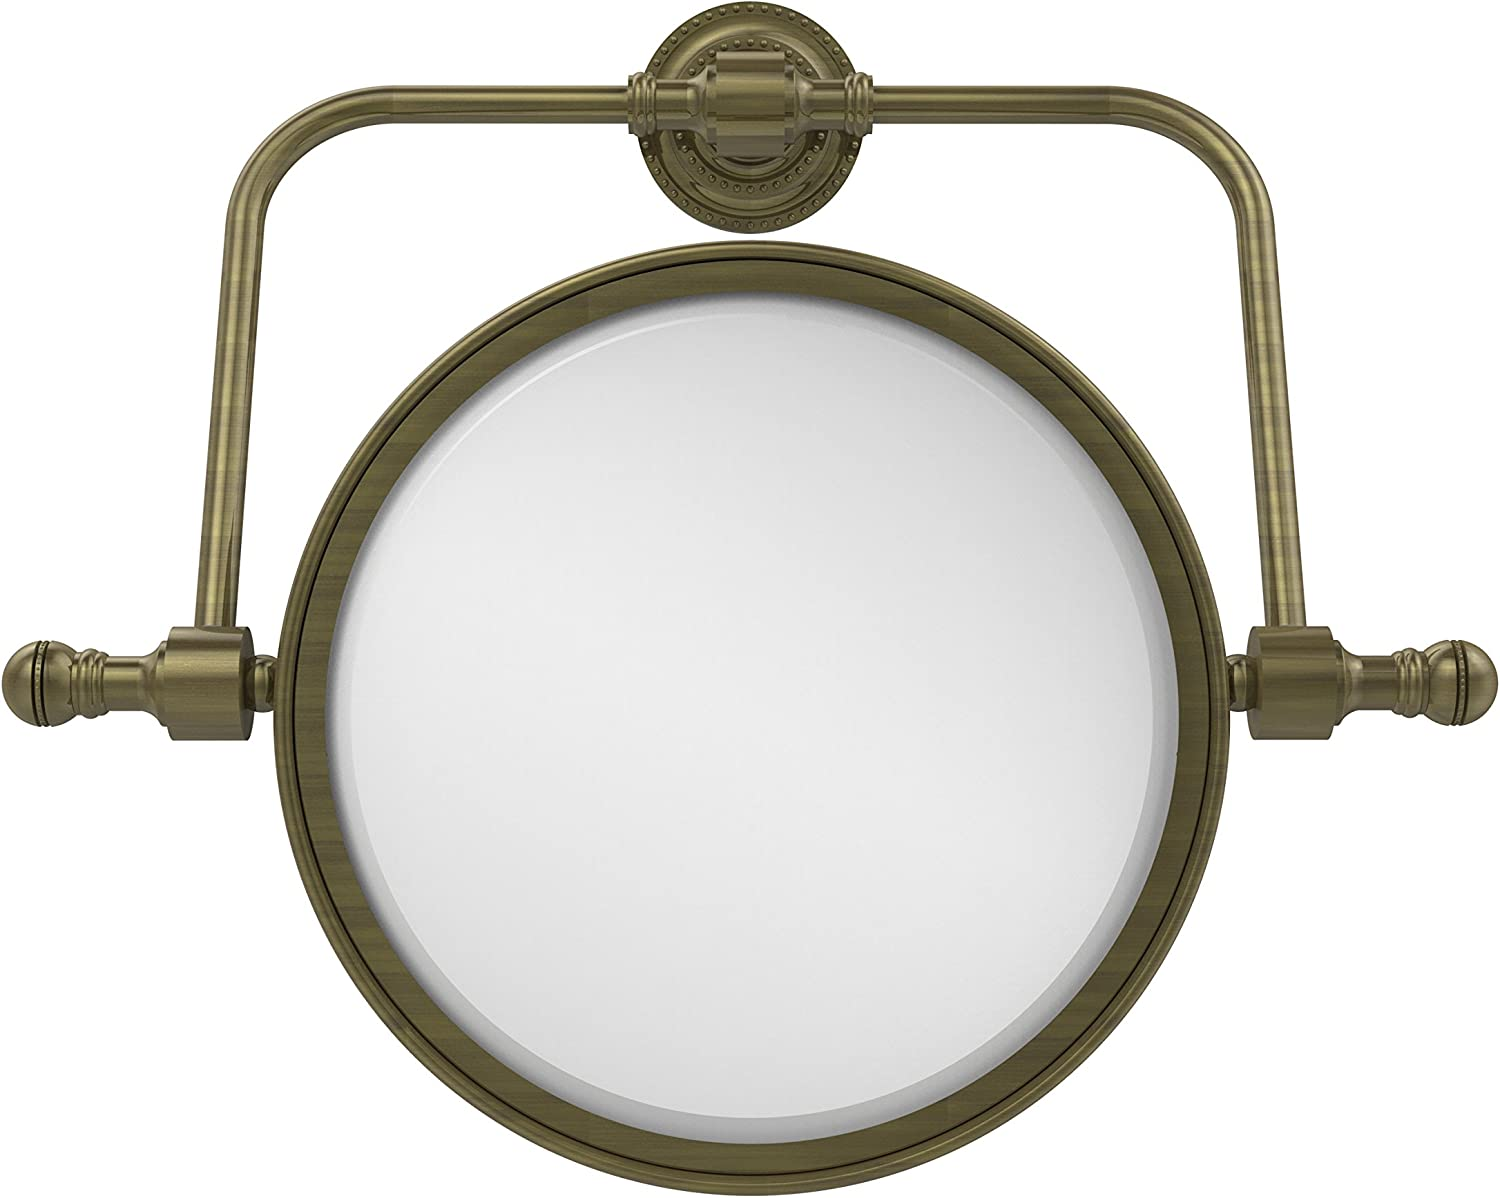 Allied Brass RDM-4 4X-ABR 8-Inch Swivel Mirror 4X Mag Antique Brass